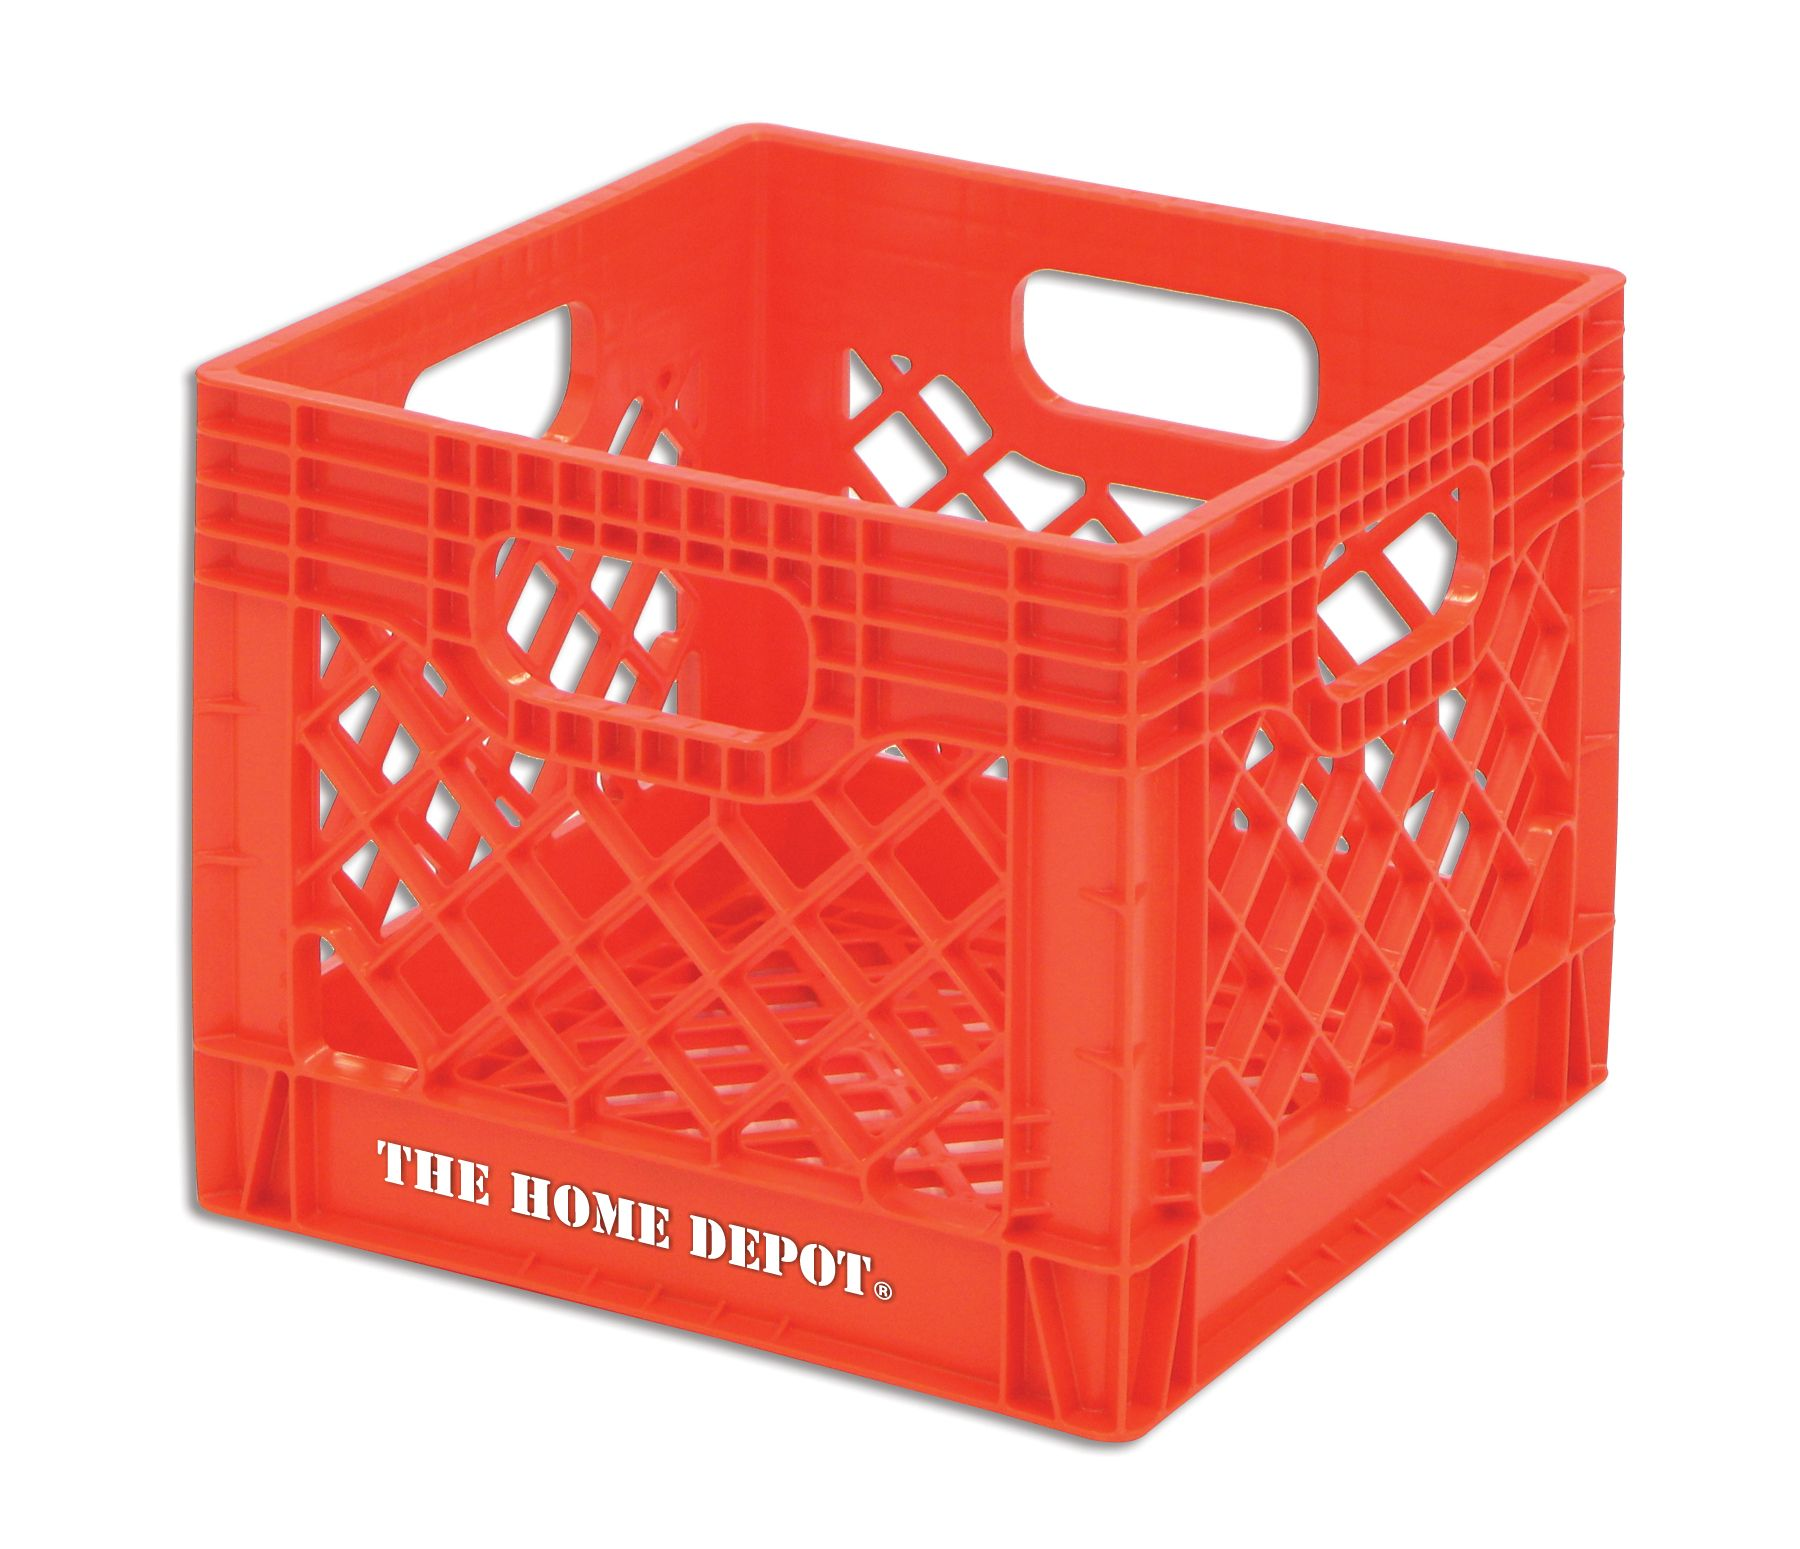 The Home Depot Crate This Milk Crate Is Only 6 97 These Are Amazing And So Handy I Already Bught 2 But Im Crate Storage Home Depot Canada Home Depot Crates